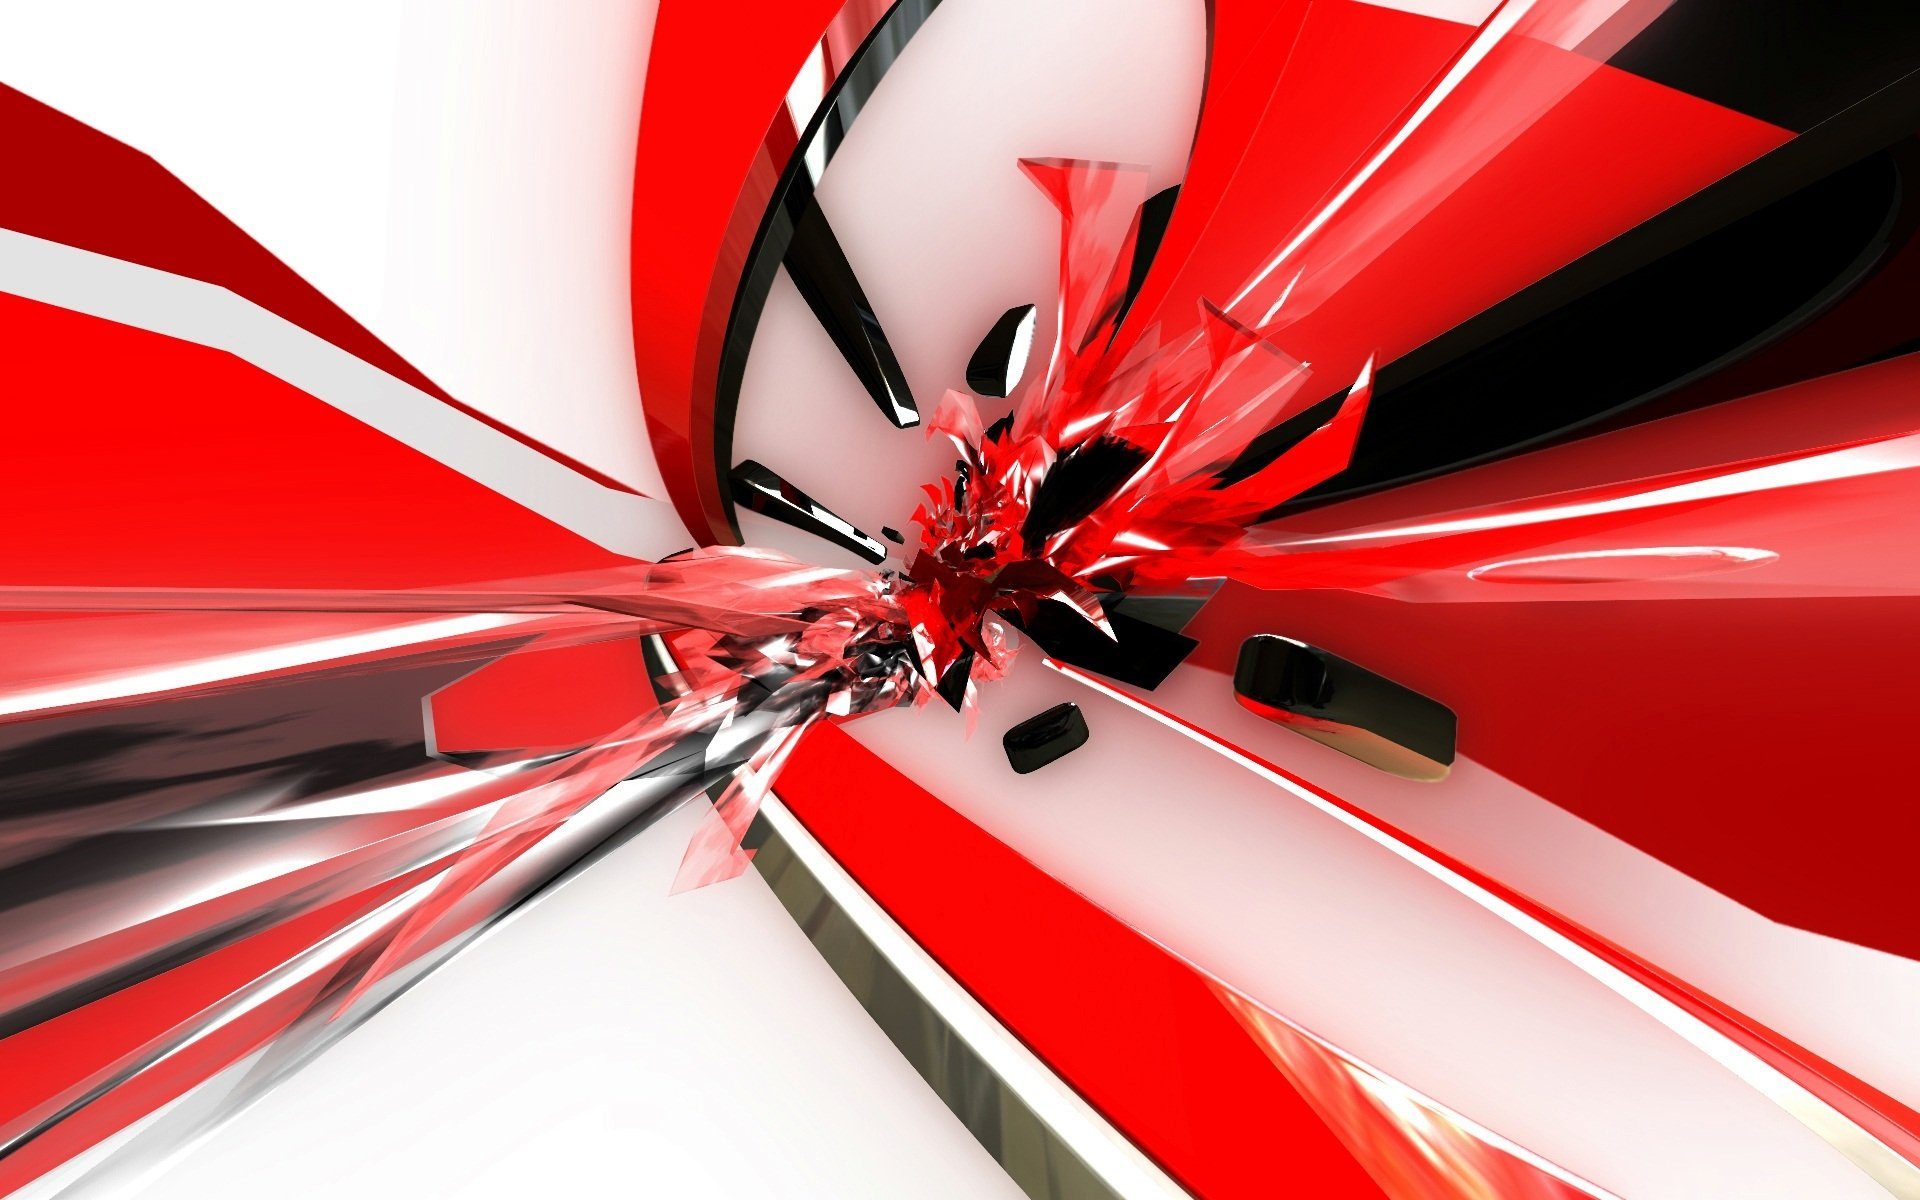 Abstract - Red  White Wallpaper